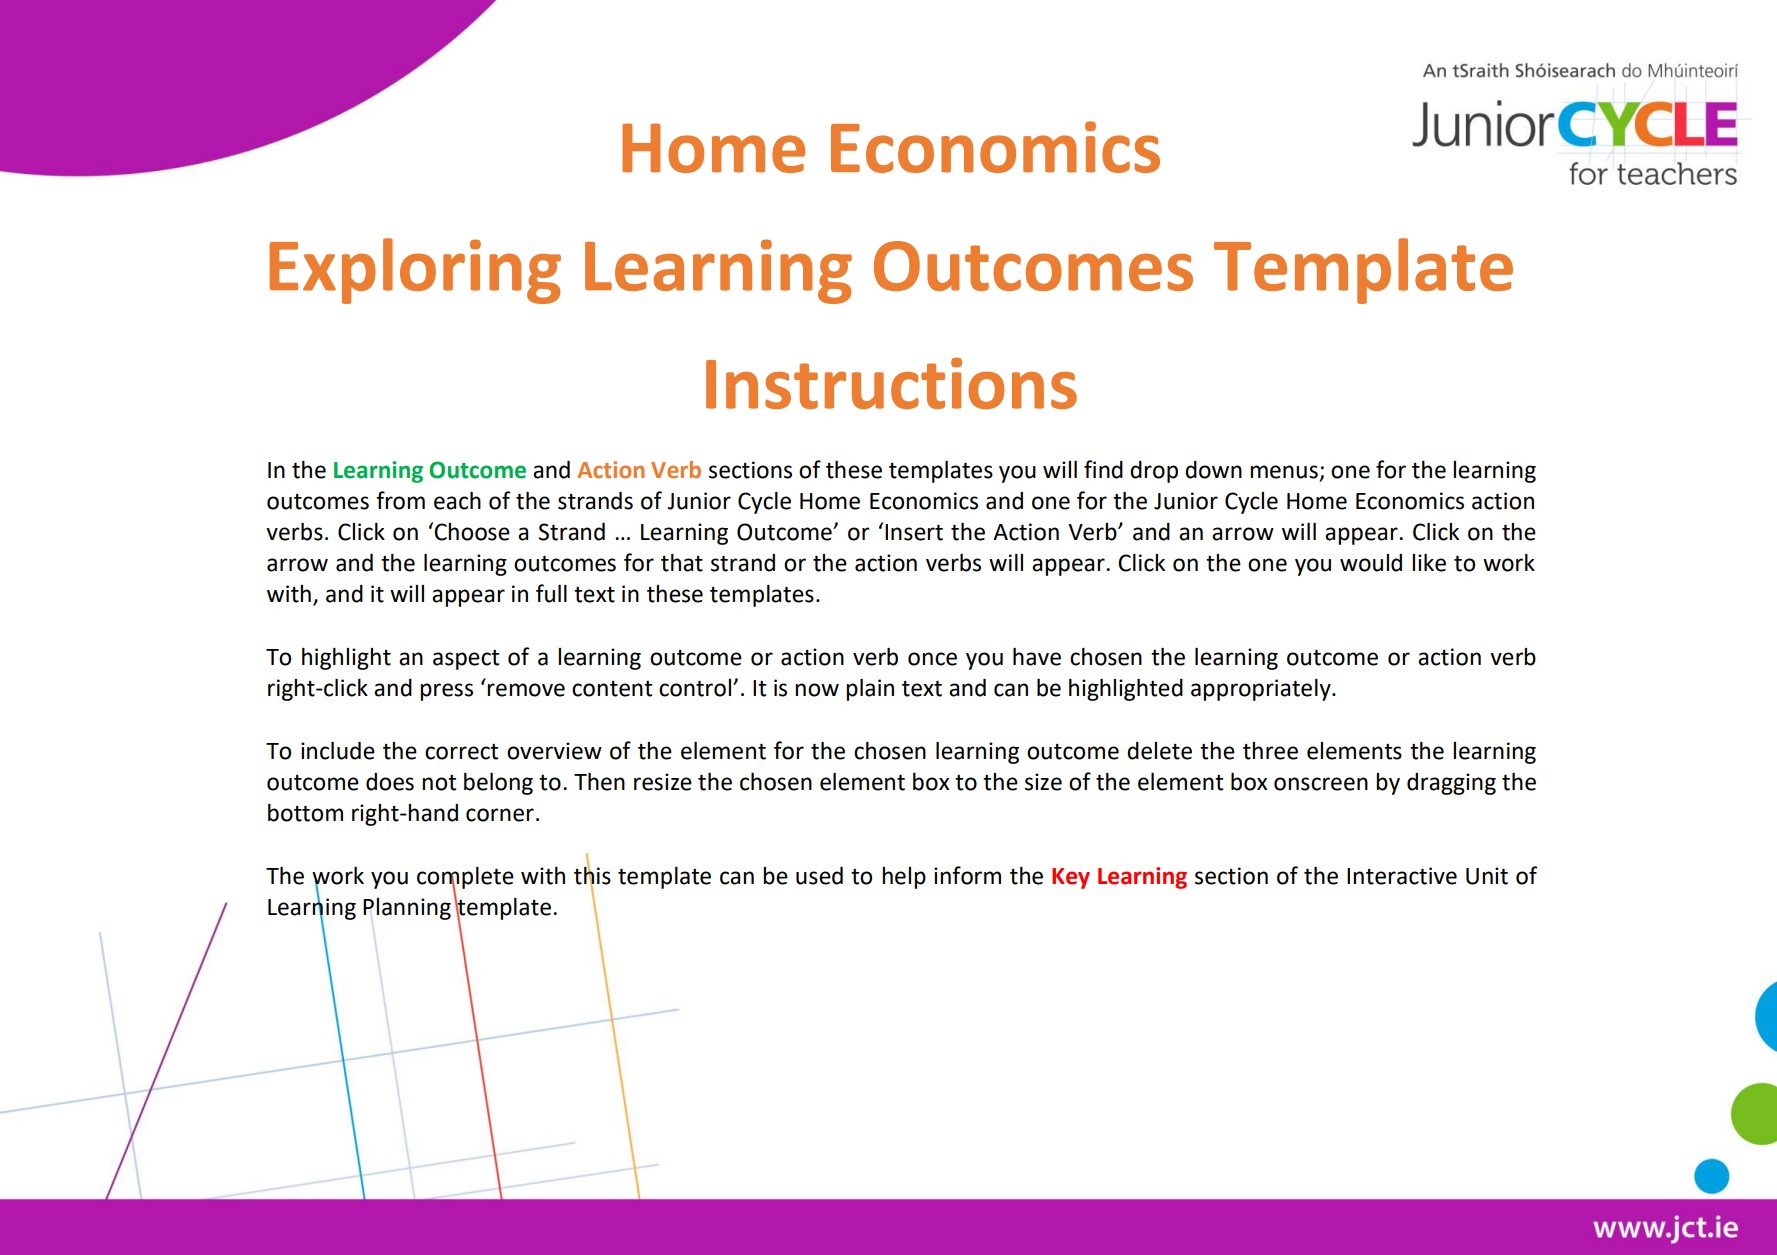 Home Economics Exploring Learning Outcomes Template Instructions